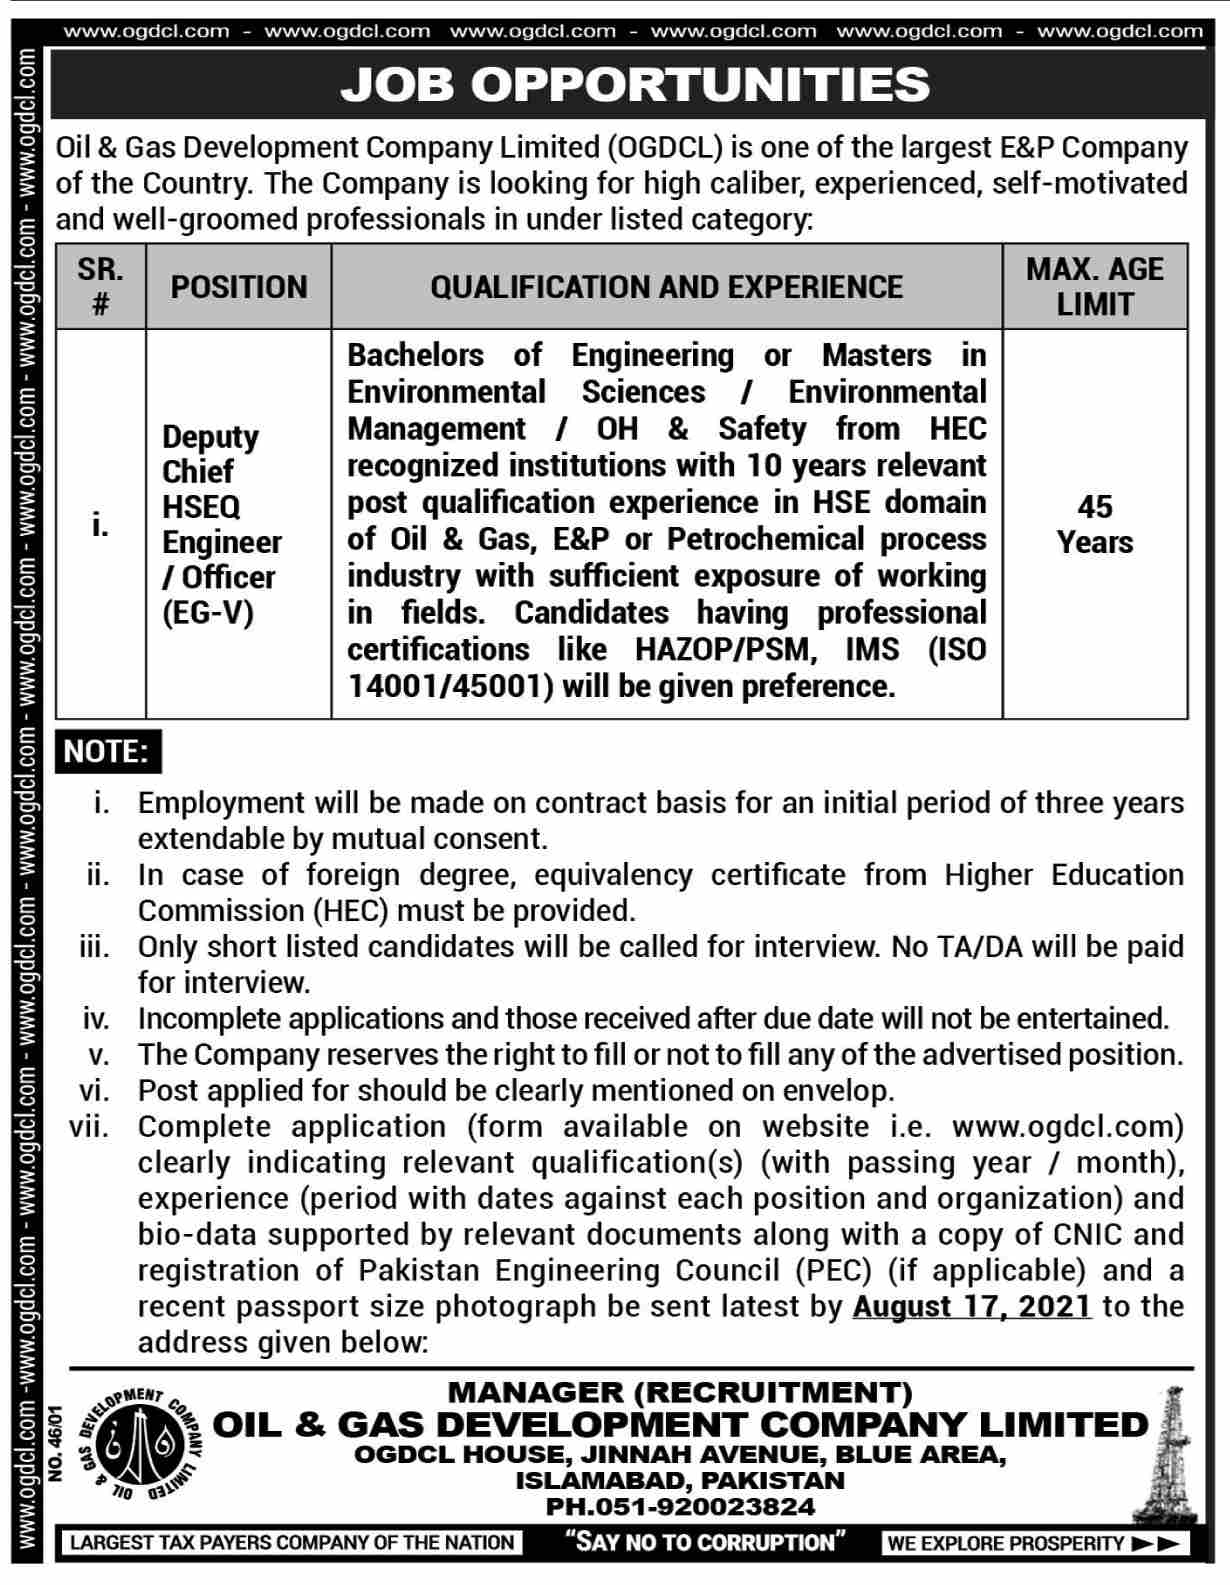 Oil & Gas Development Company Limited Jobs August 2021